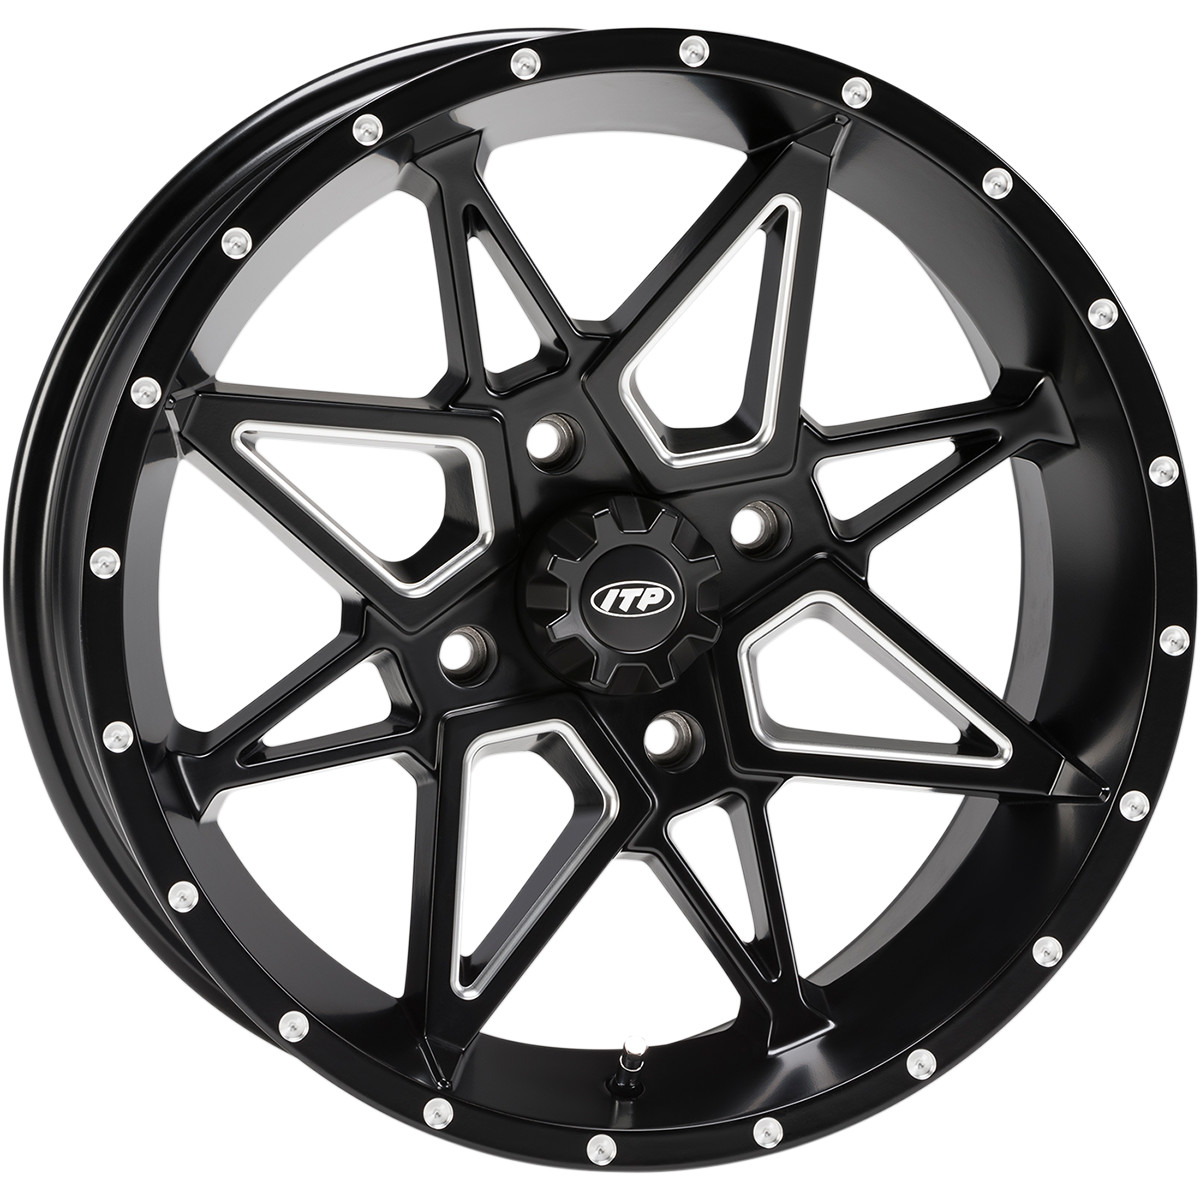 ITP 17x7 4x137 Tornado vannesarja Can-Am